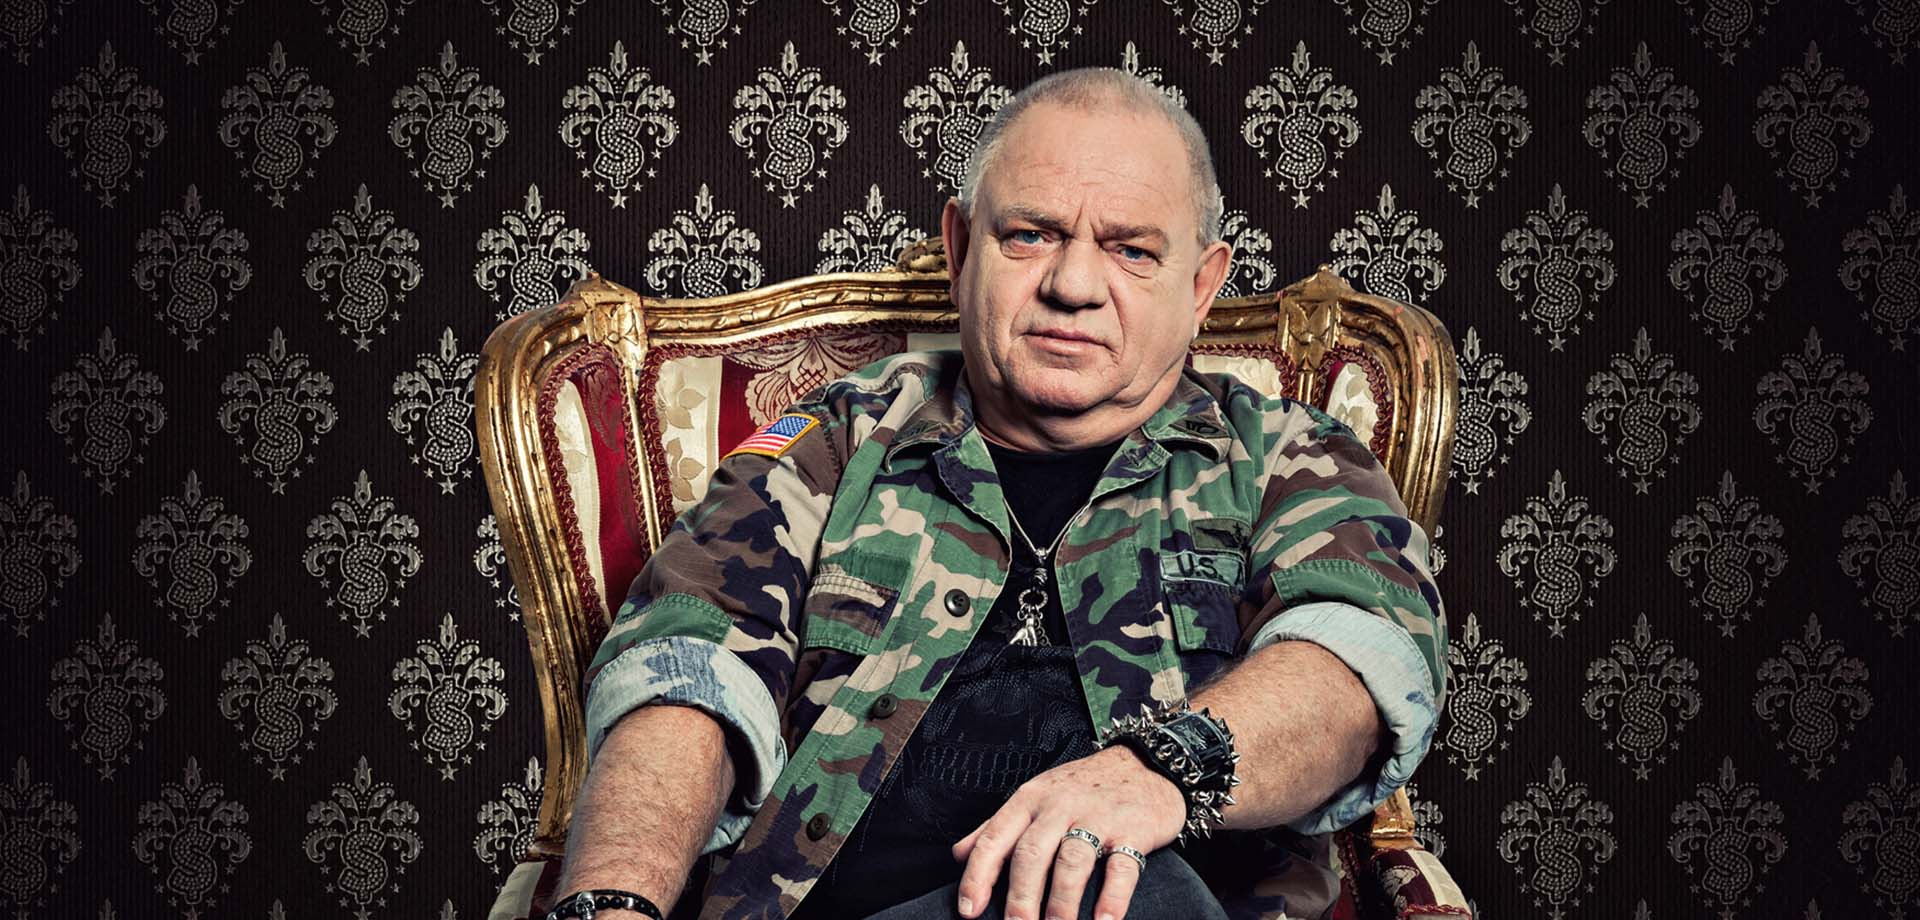 DIRKSCHNEIDER - Exclusive Interview!